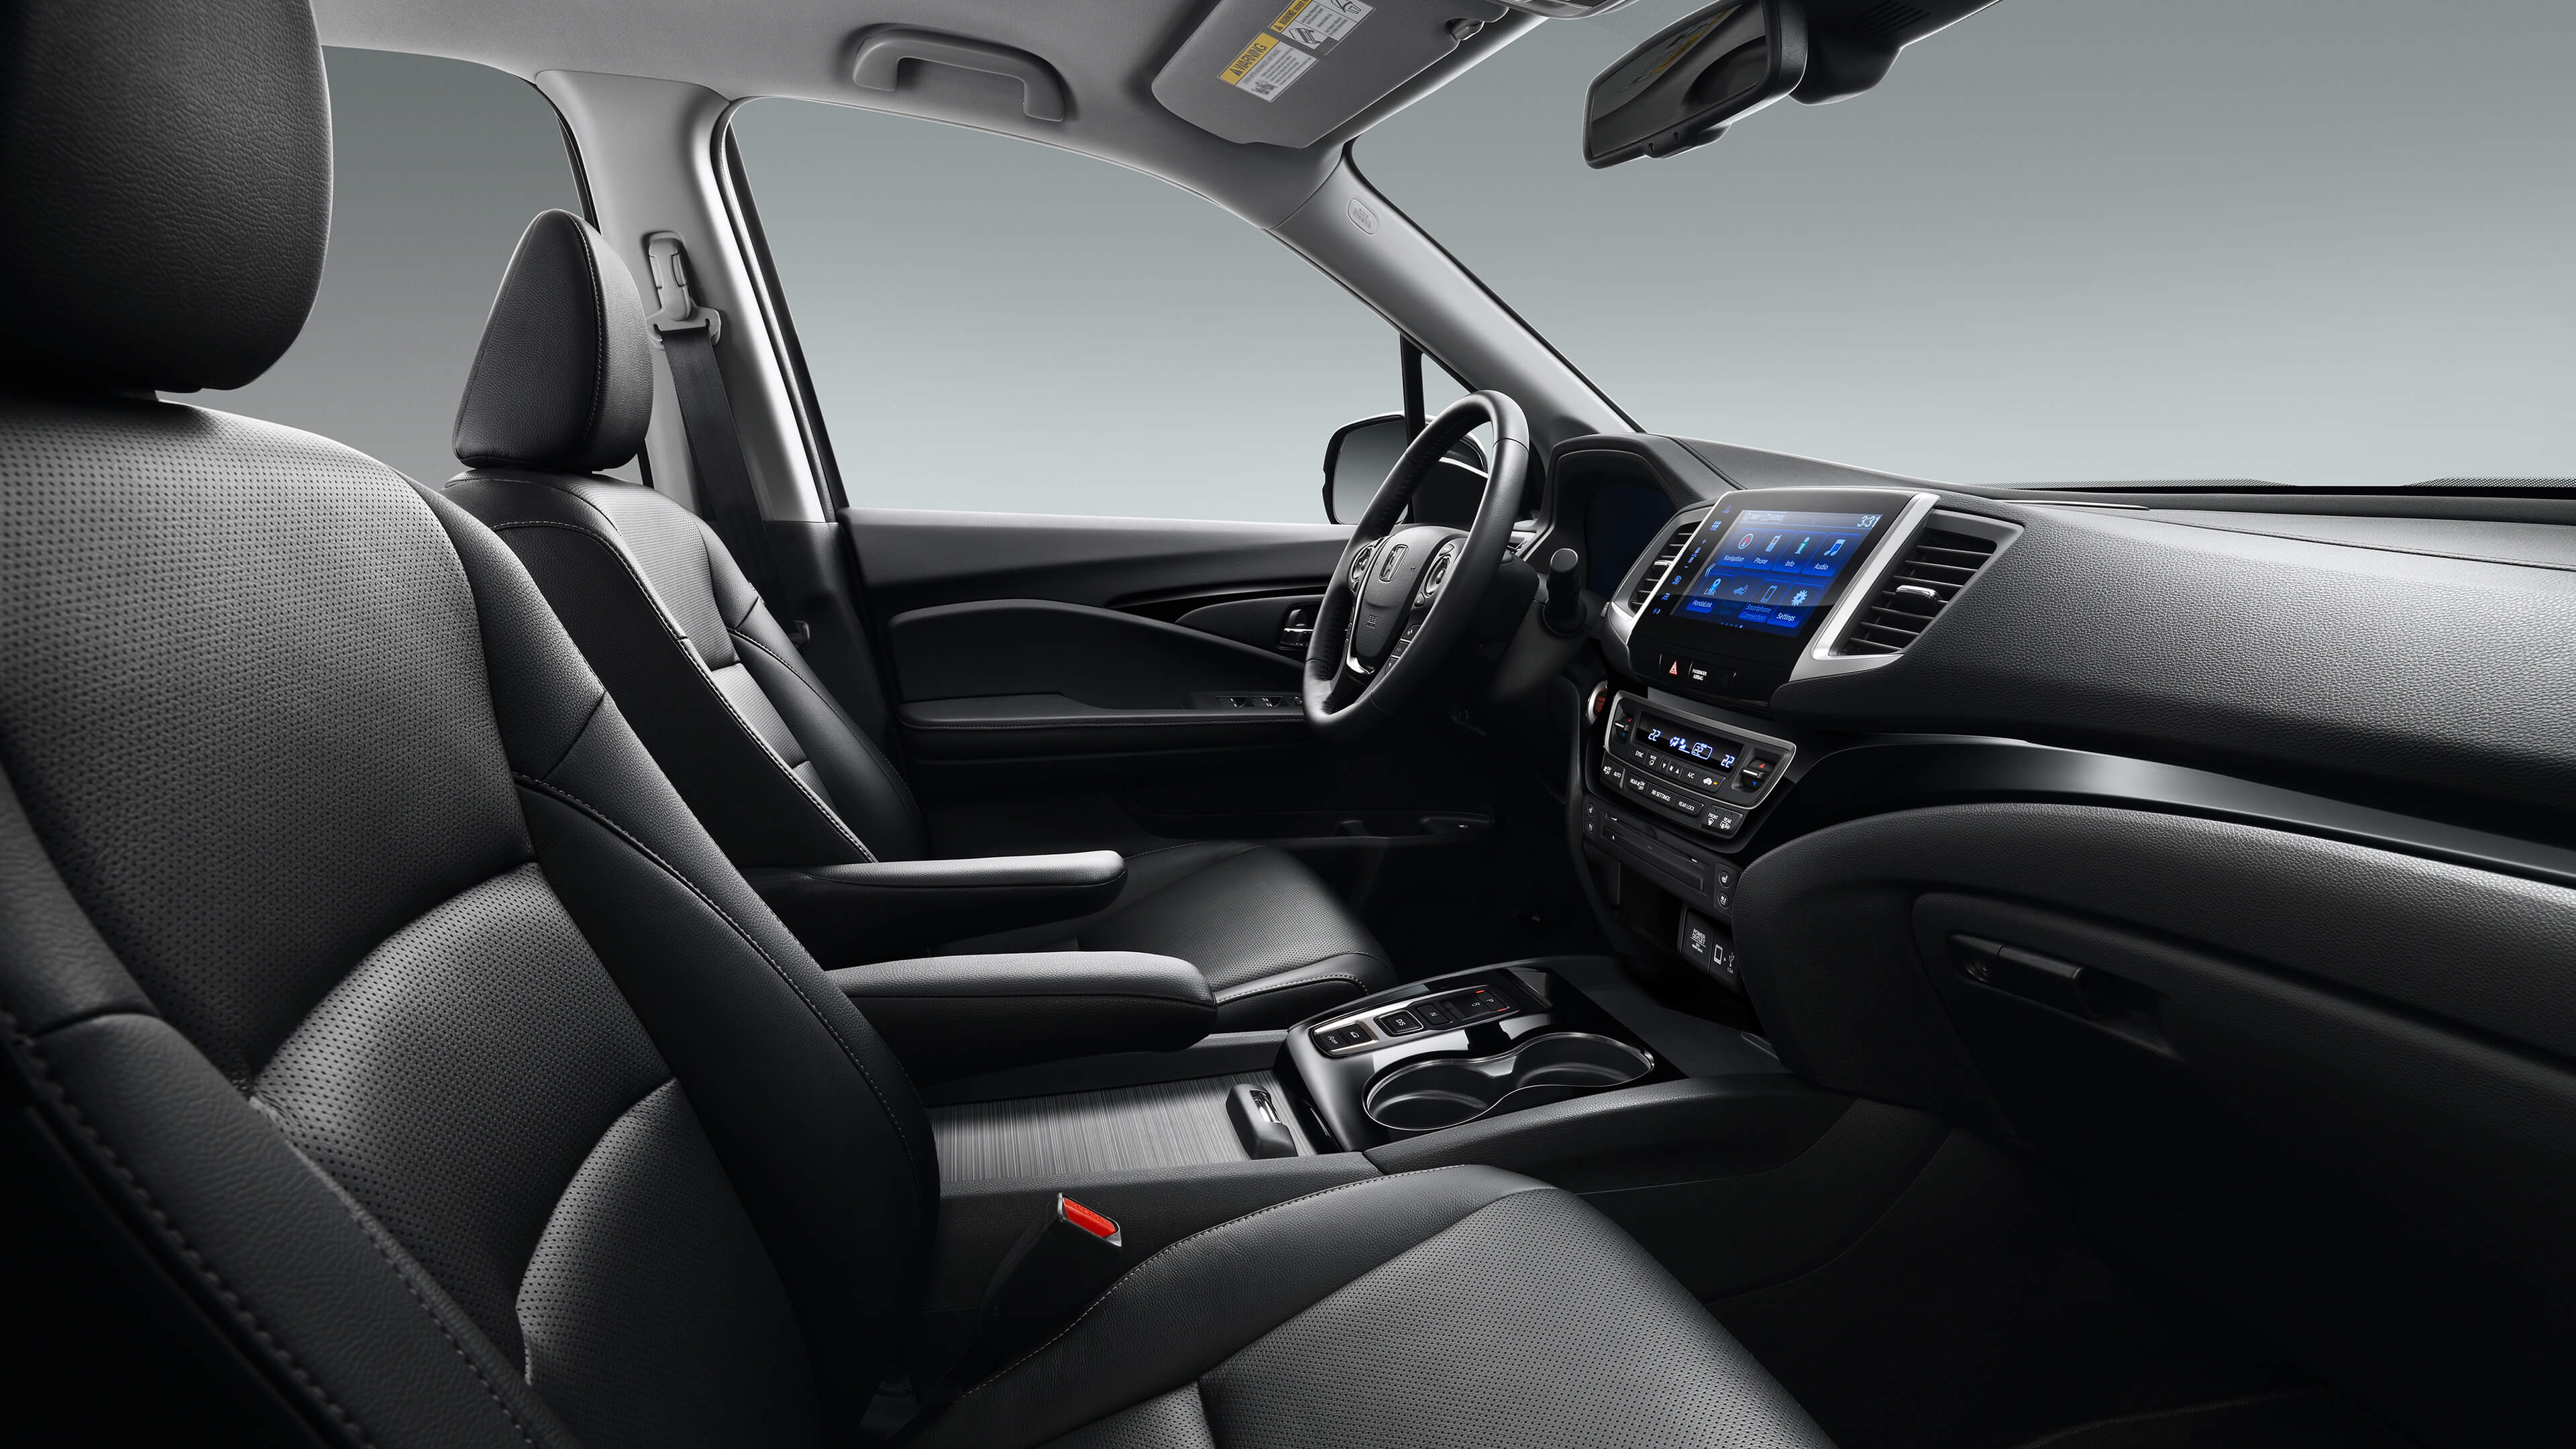 Side interior front view of the 2020 Honda Ridgeline